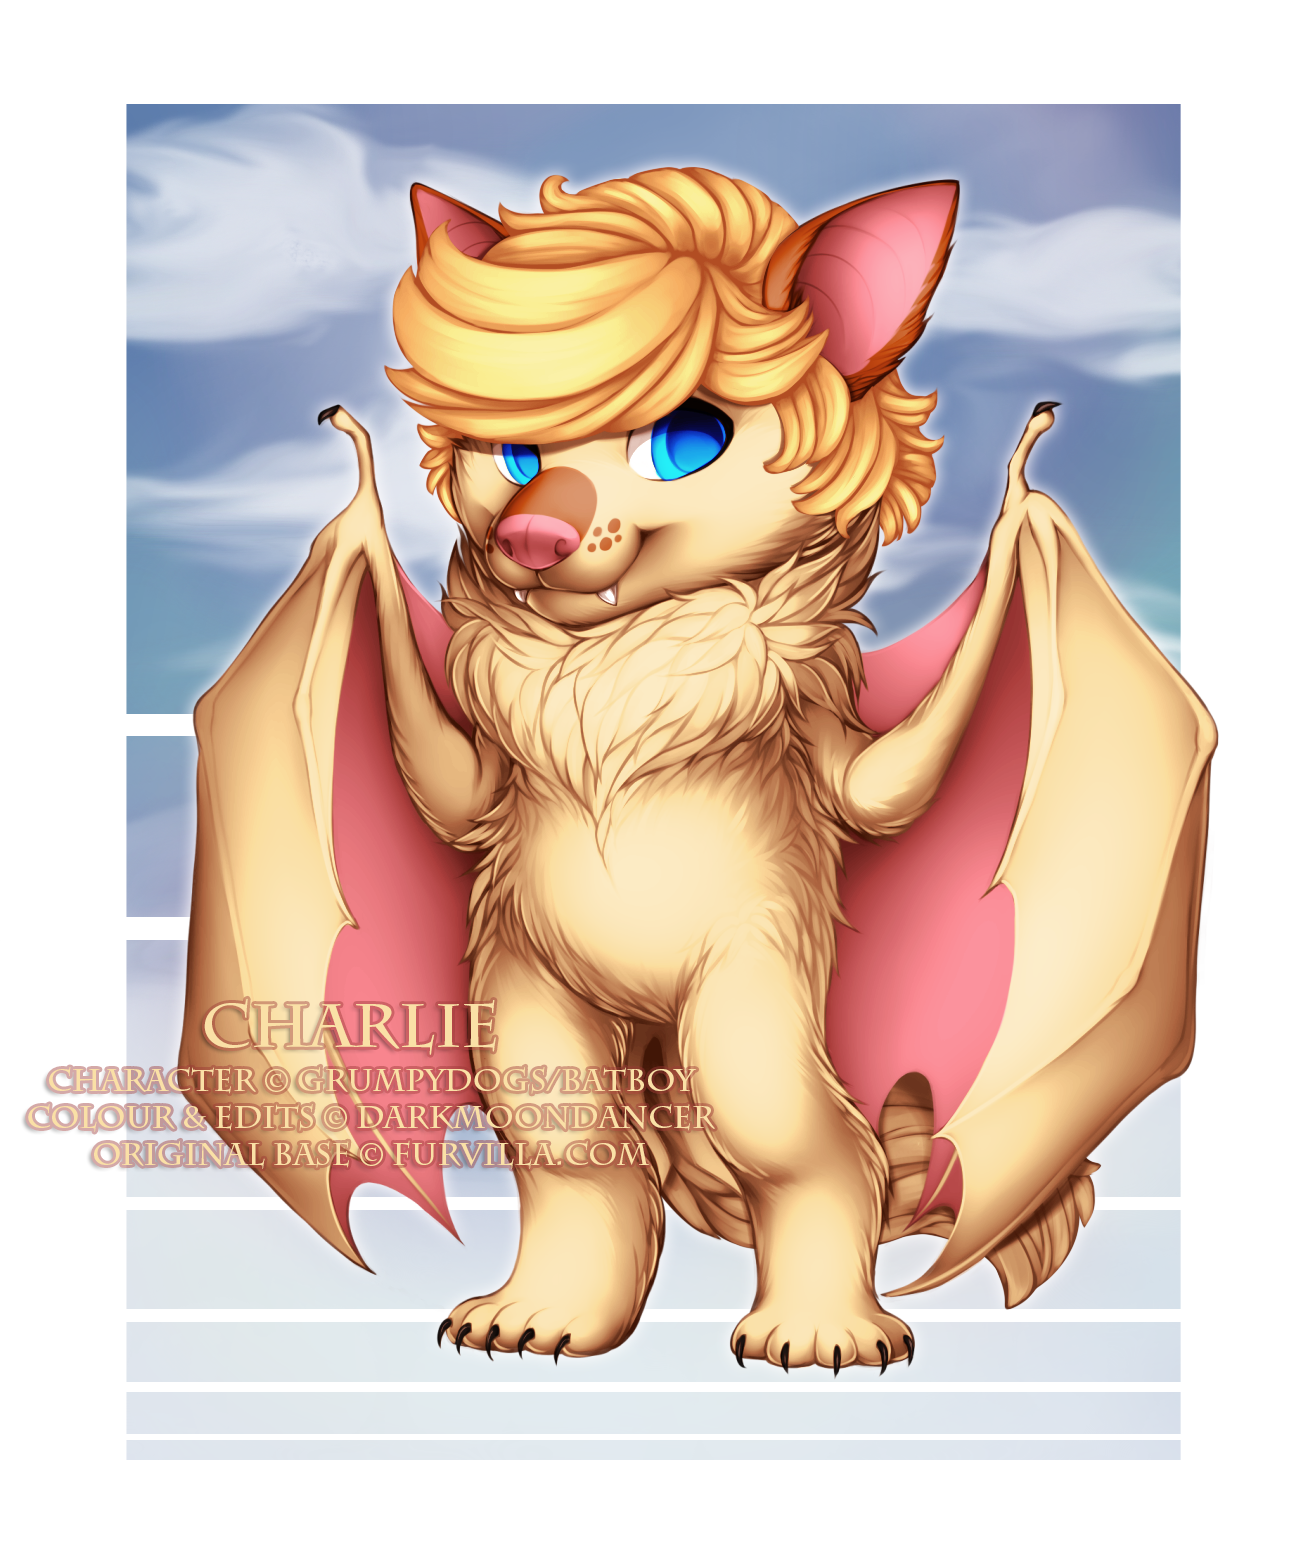 This is Charlie (c) GrumpyDogs/Batboy, and the edits I completed on him include custom tail, fangs and his hair!